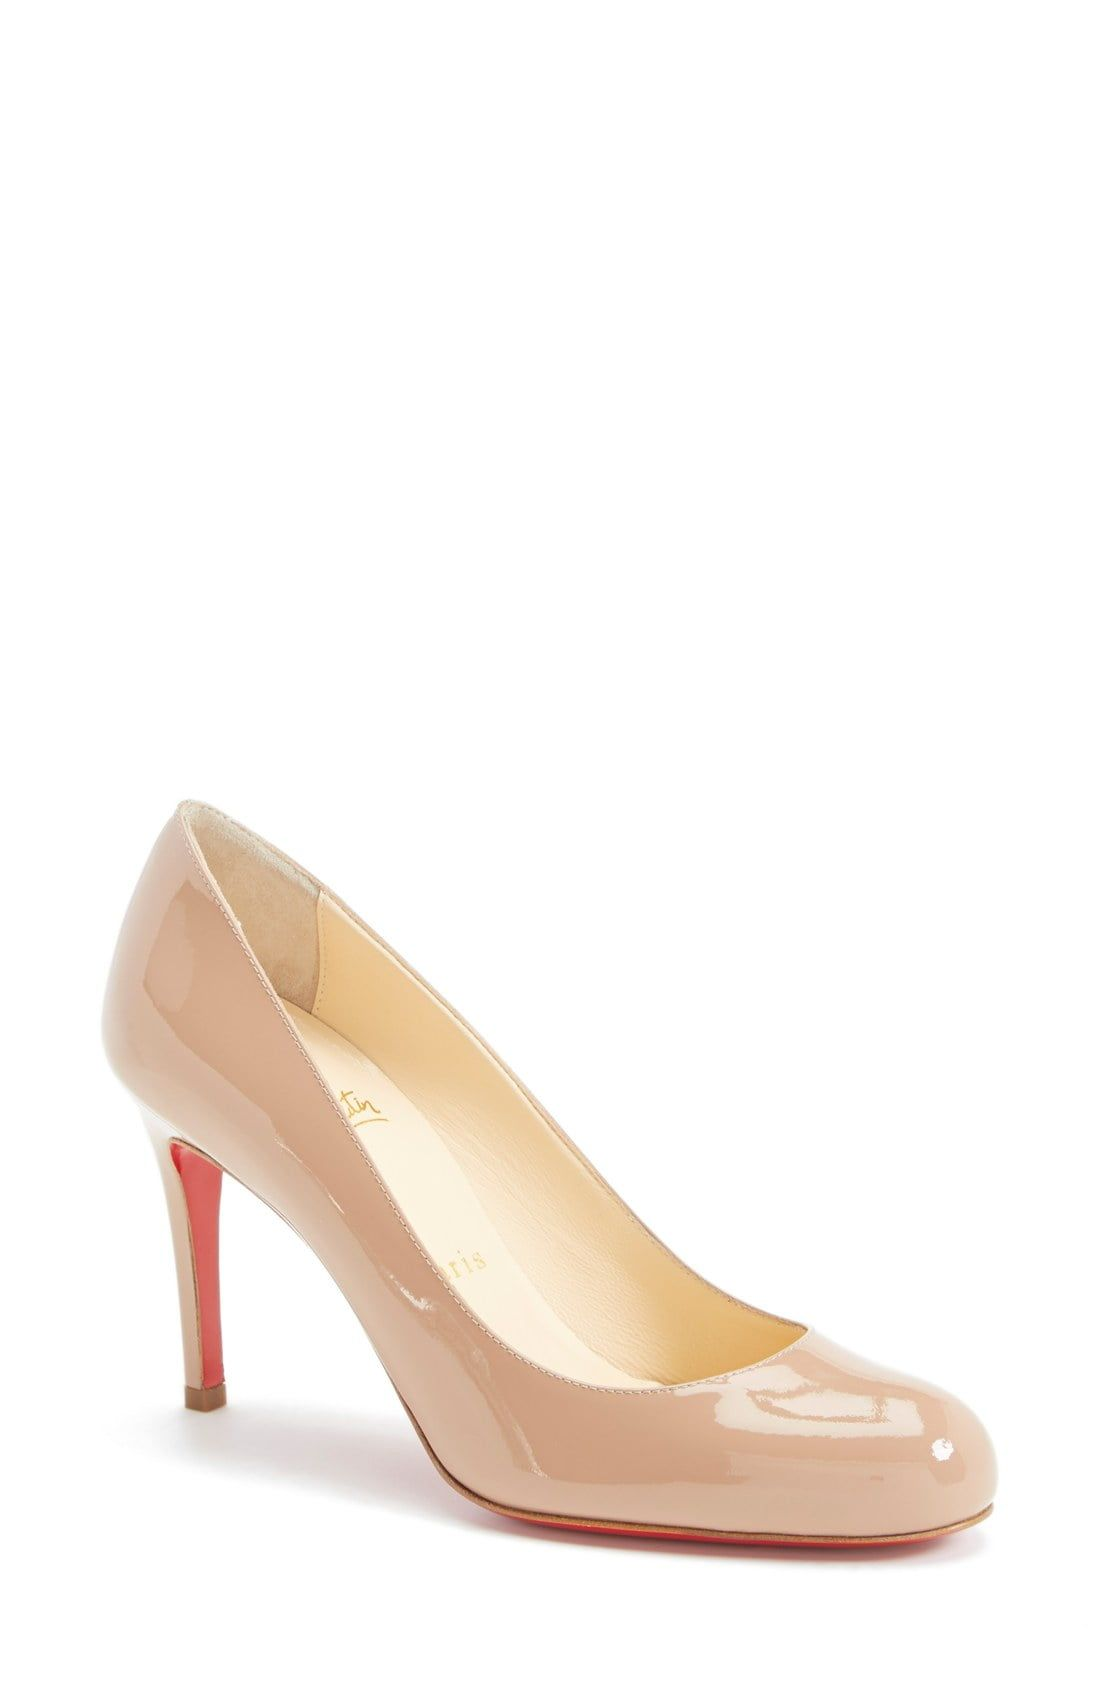 dbafc588e8e Christian Louboutin Simple Pump in 2019 | Products | Christian ...